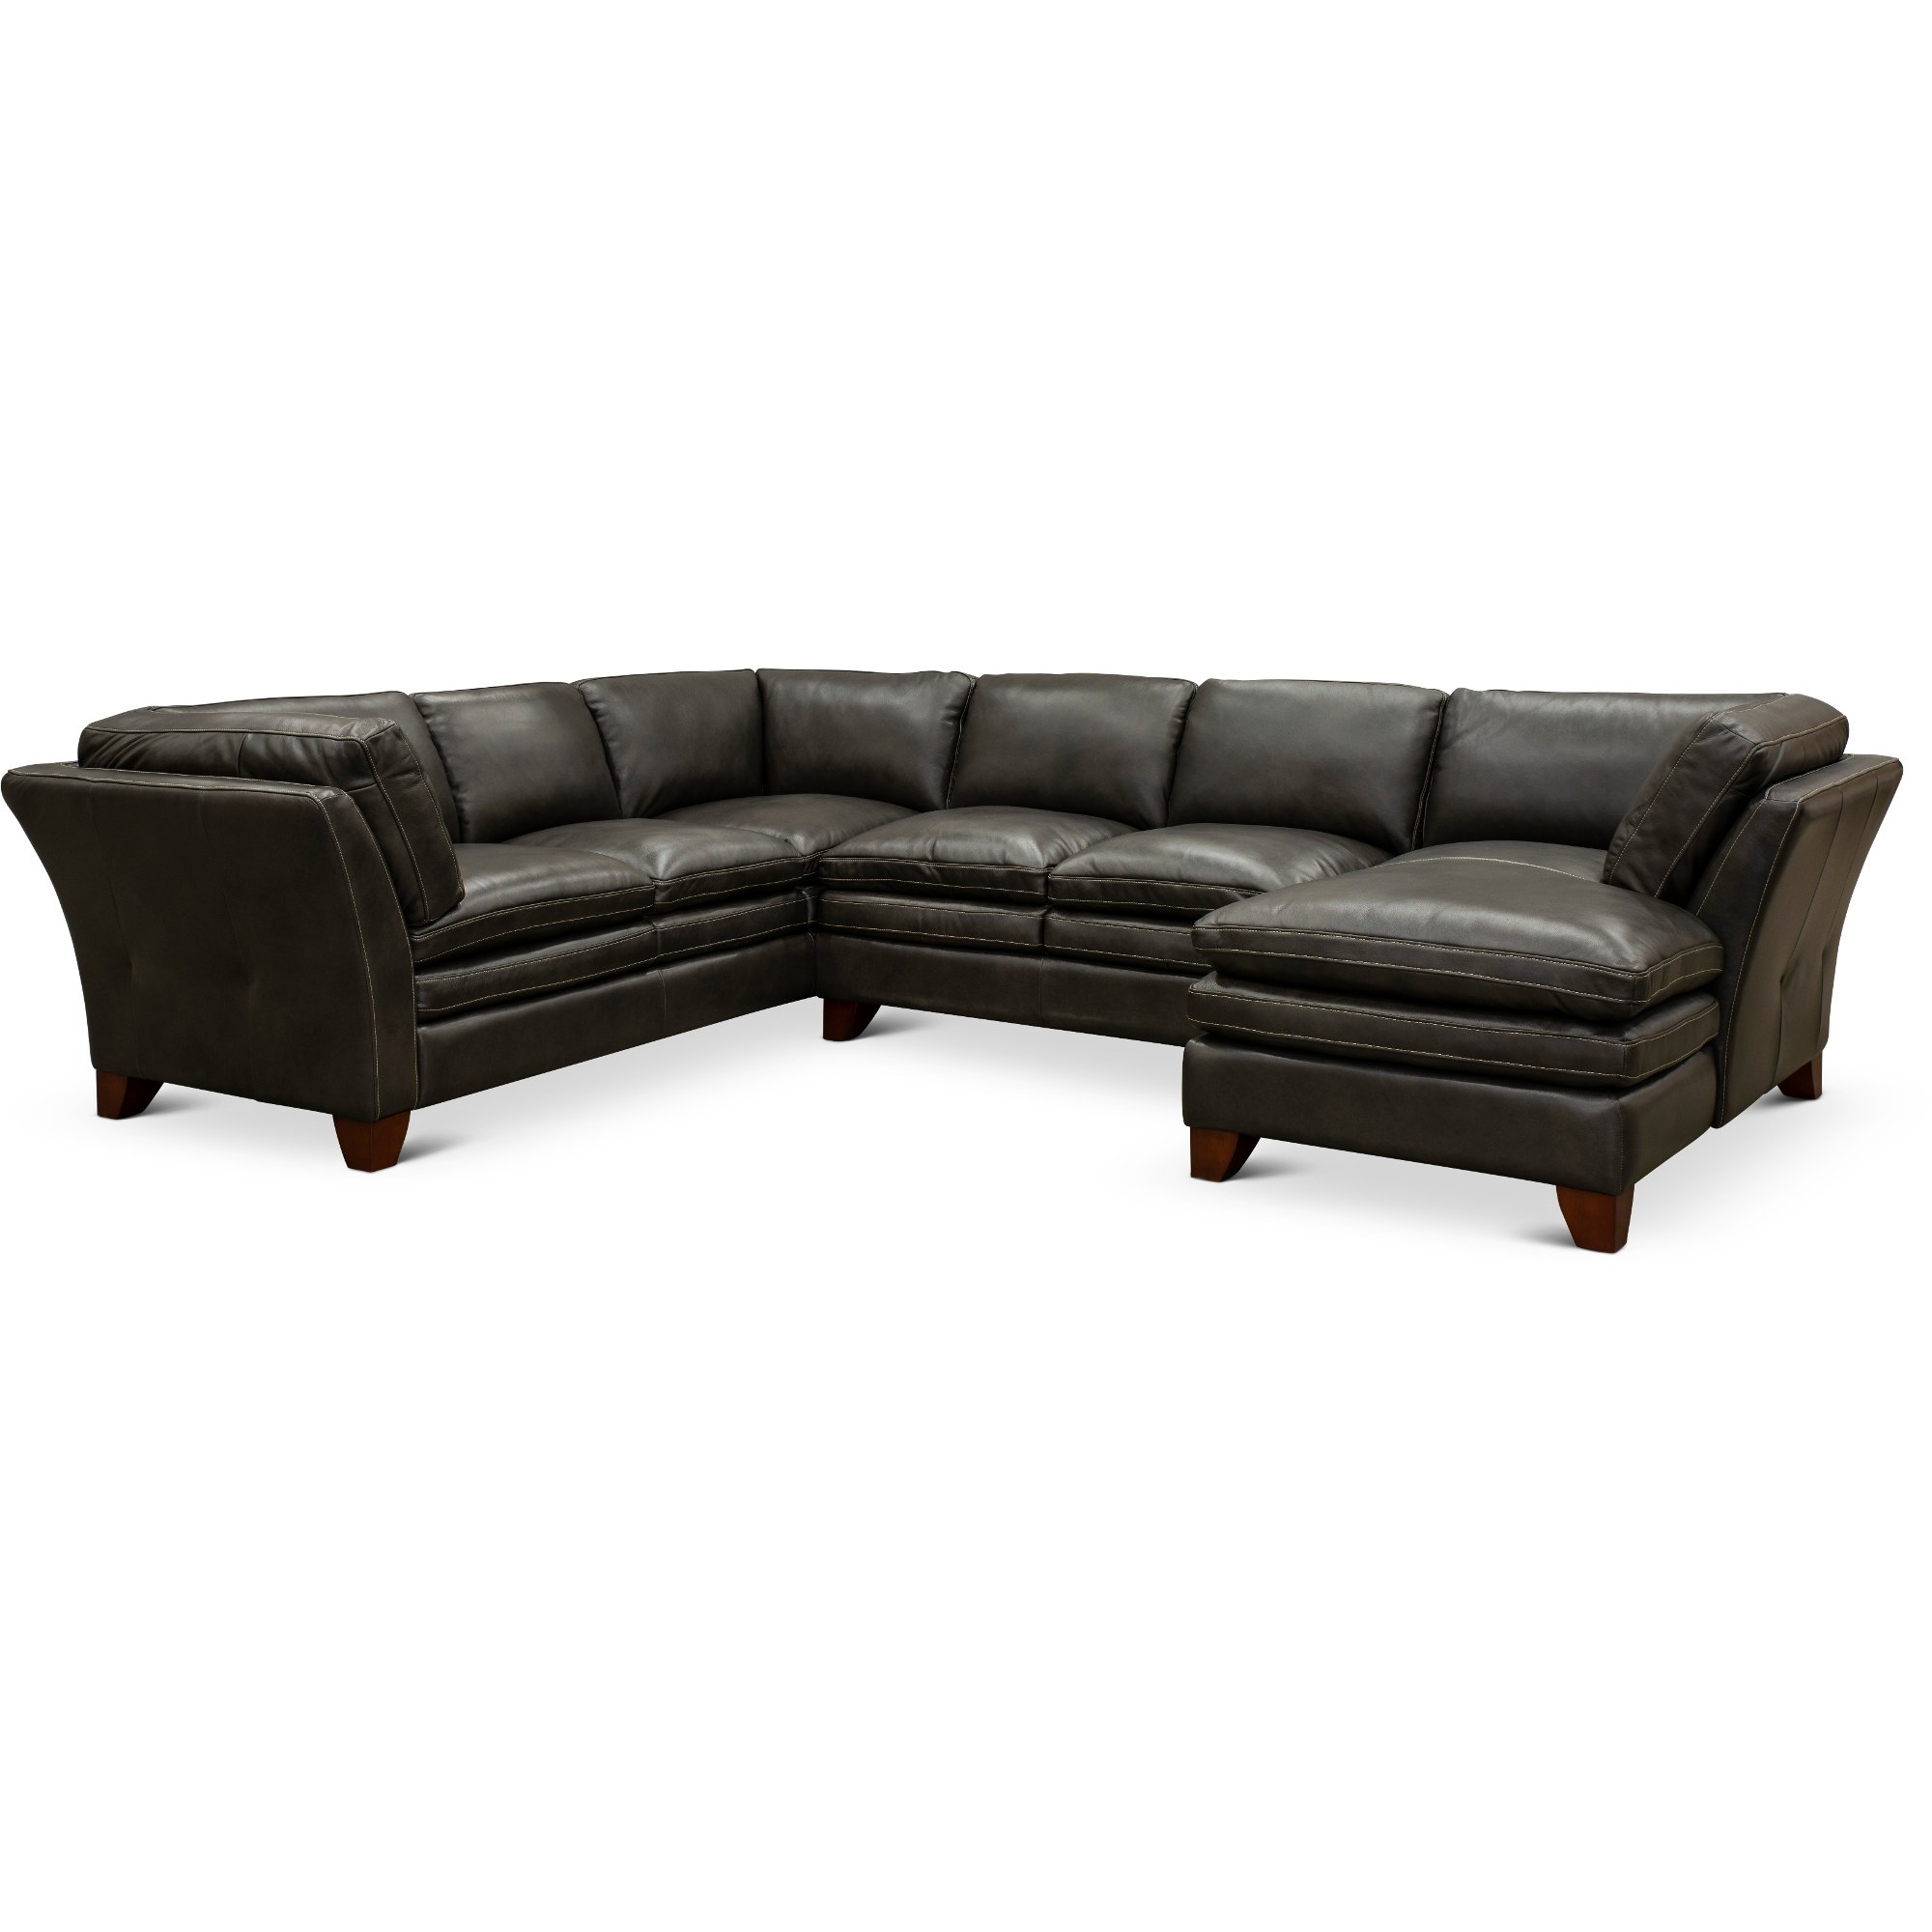 Charcoal Leather 3 Piece Sectional Sofa with RAF Chaise - Sierra